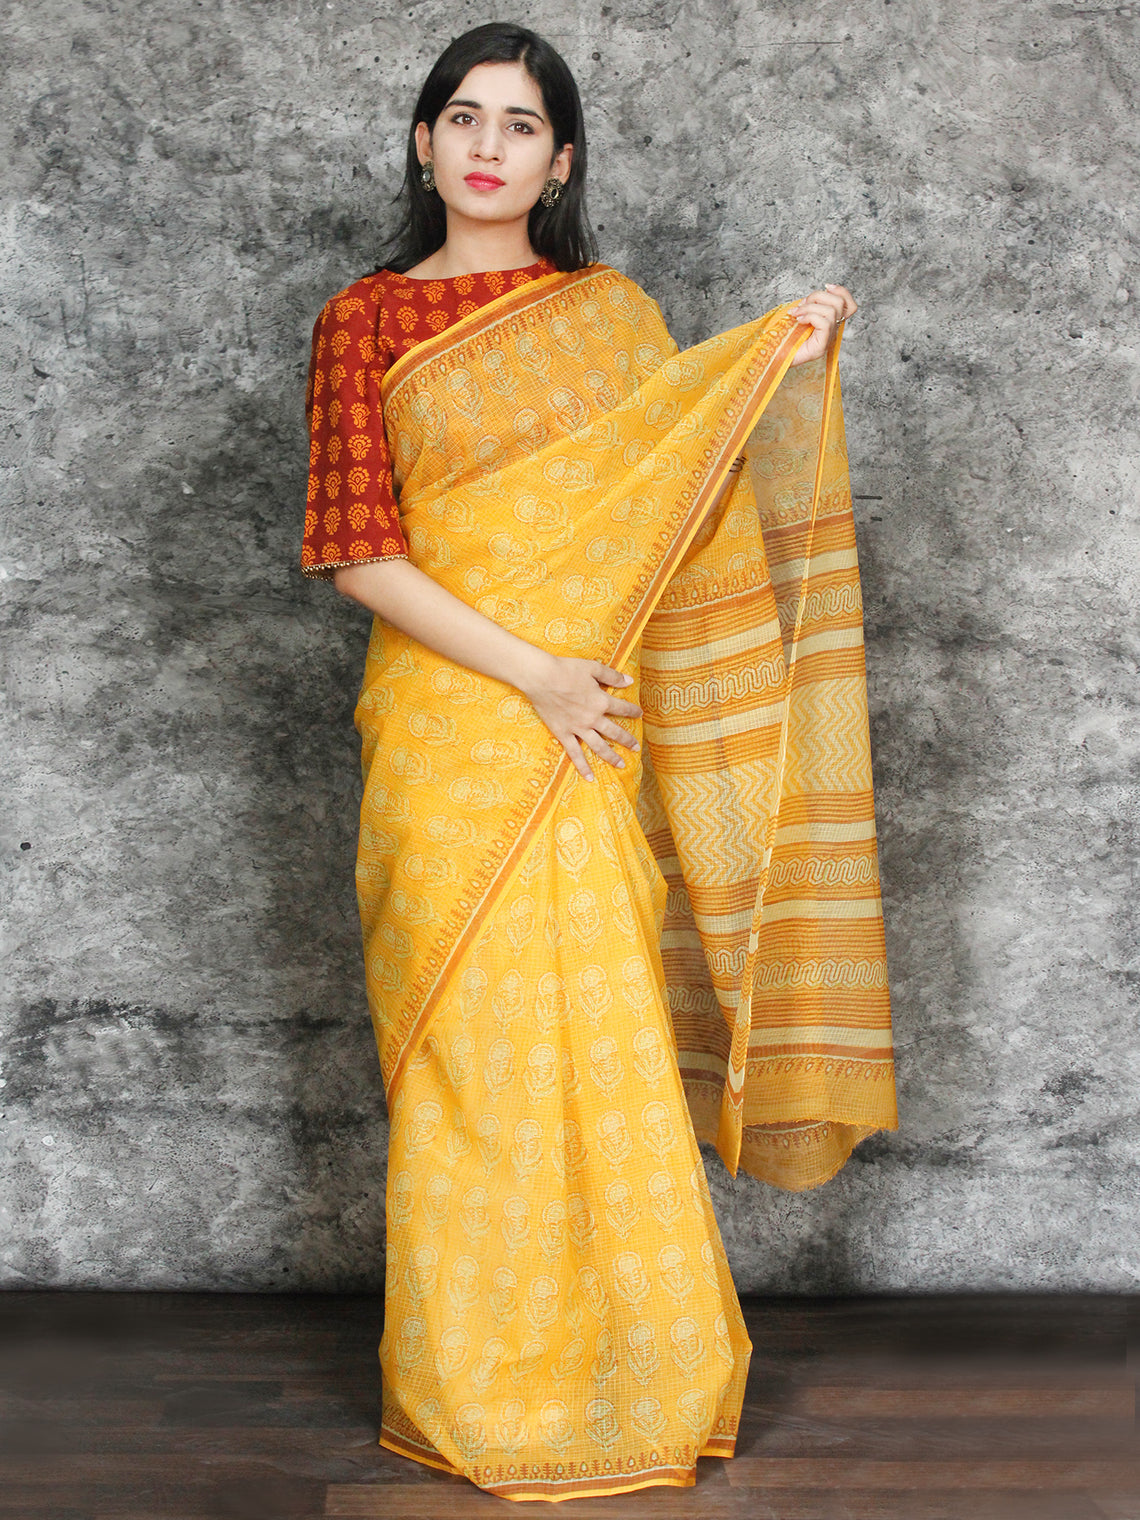 Yellow Orange Ivory Hand Block Printed Kota Doria Saree in Natural Colors - S031703107